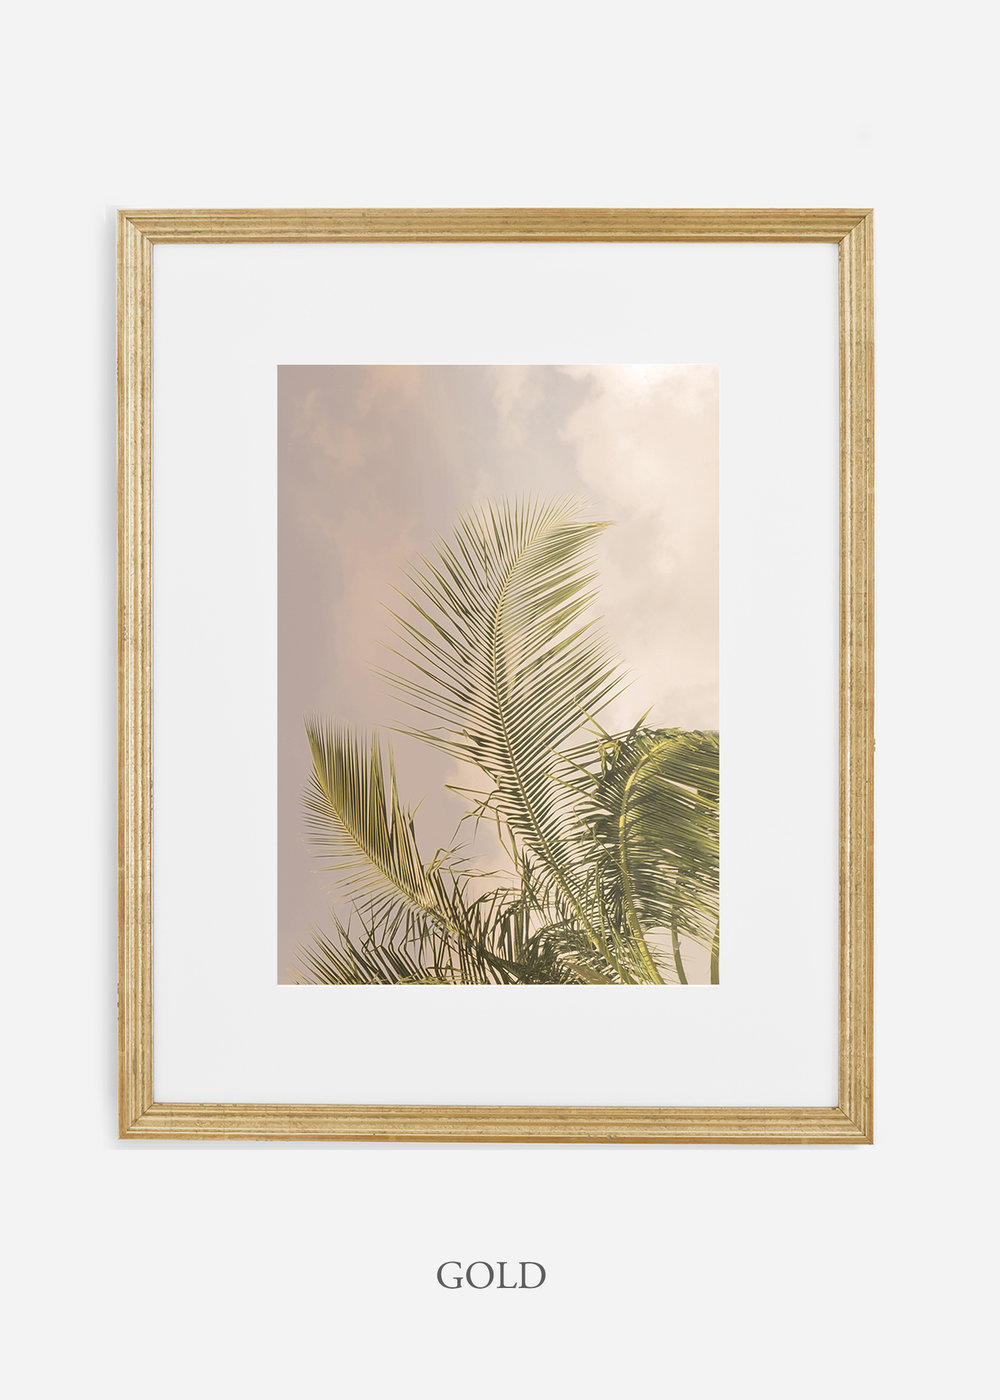 WilderCalifornia_PalmTree_Art_Photography_interiordesign_goldframe.jpg